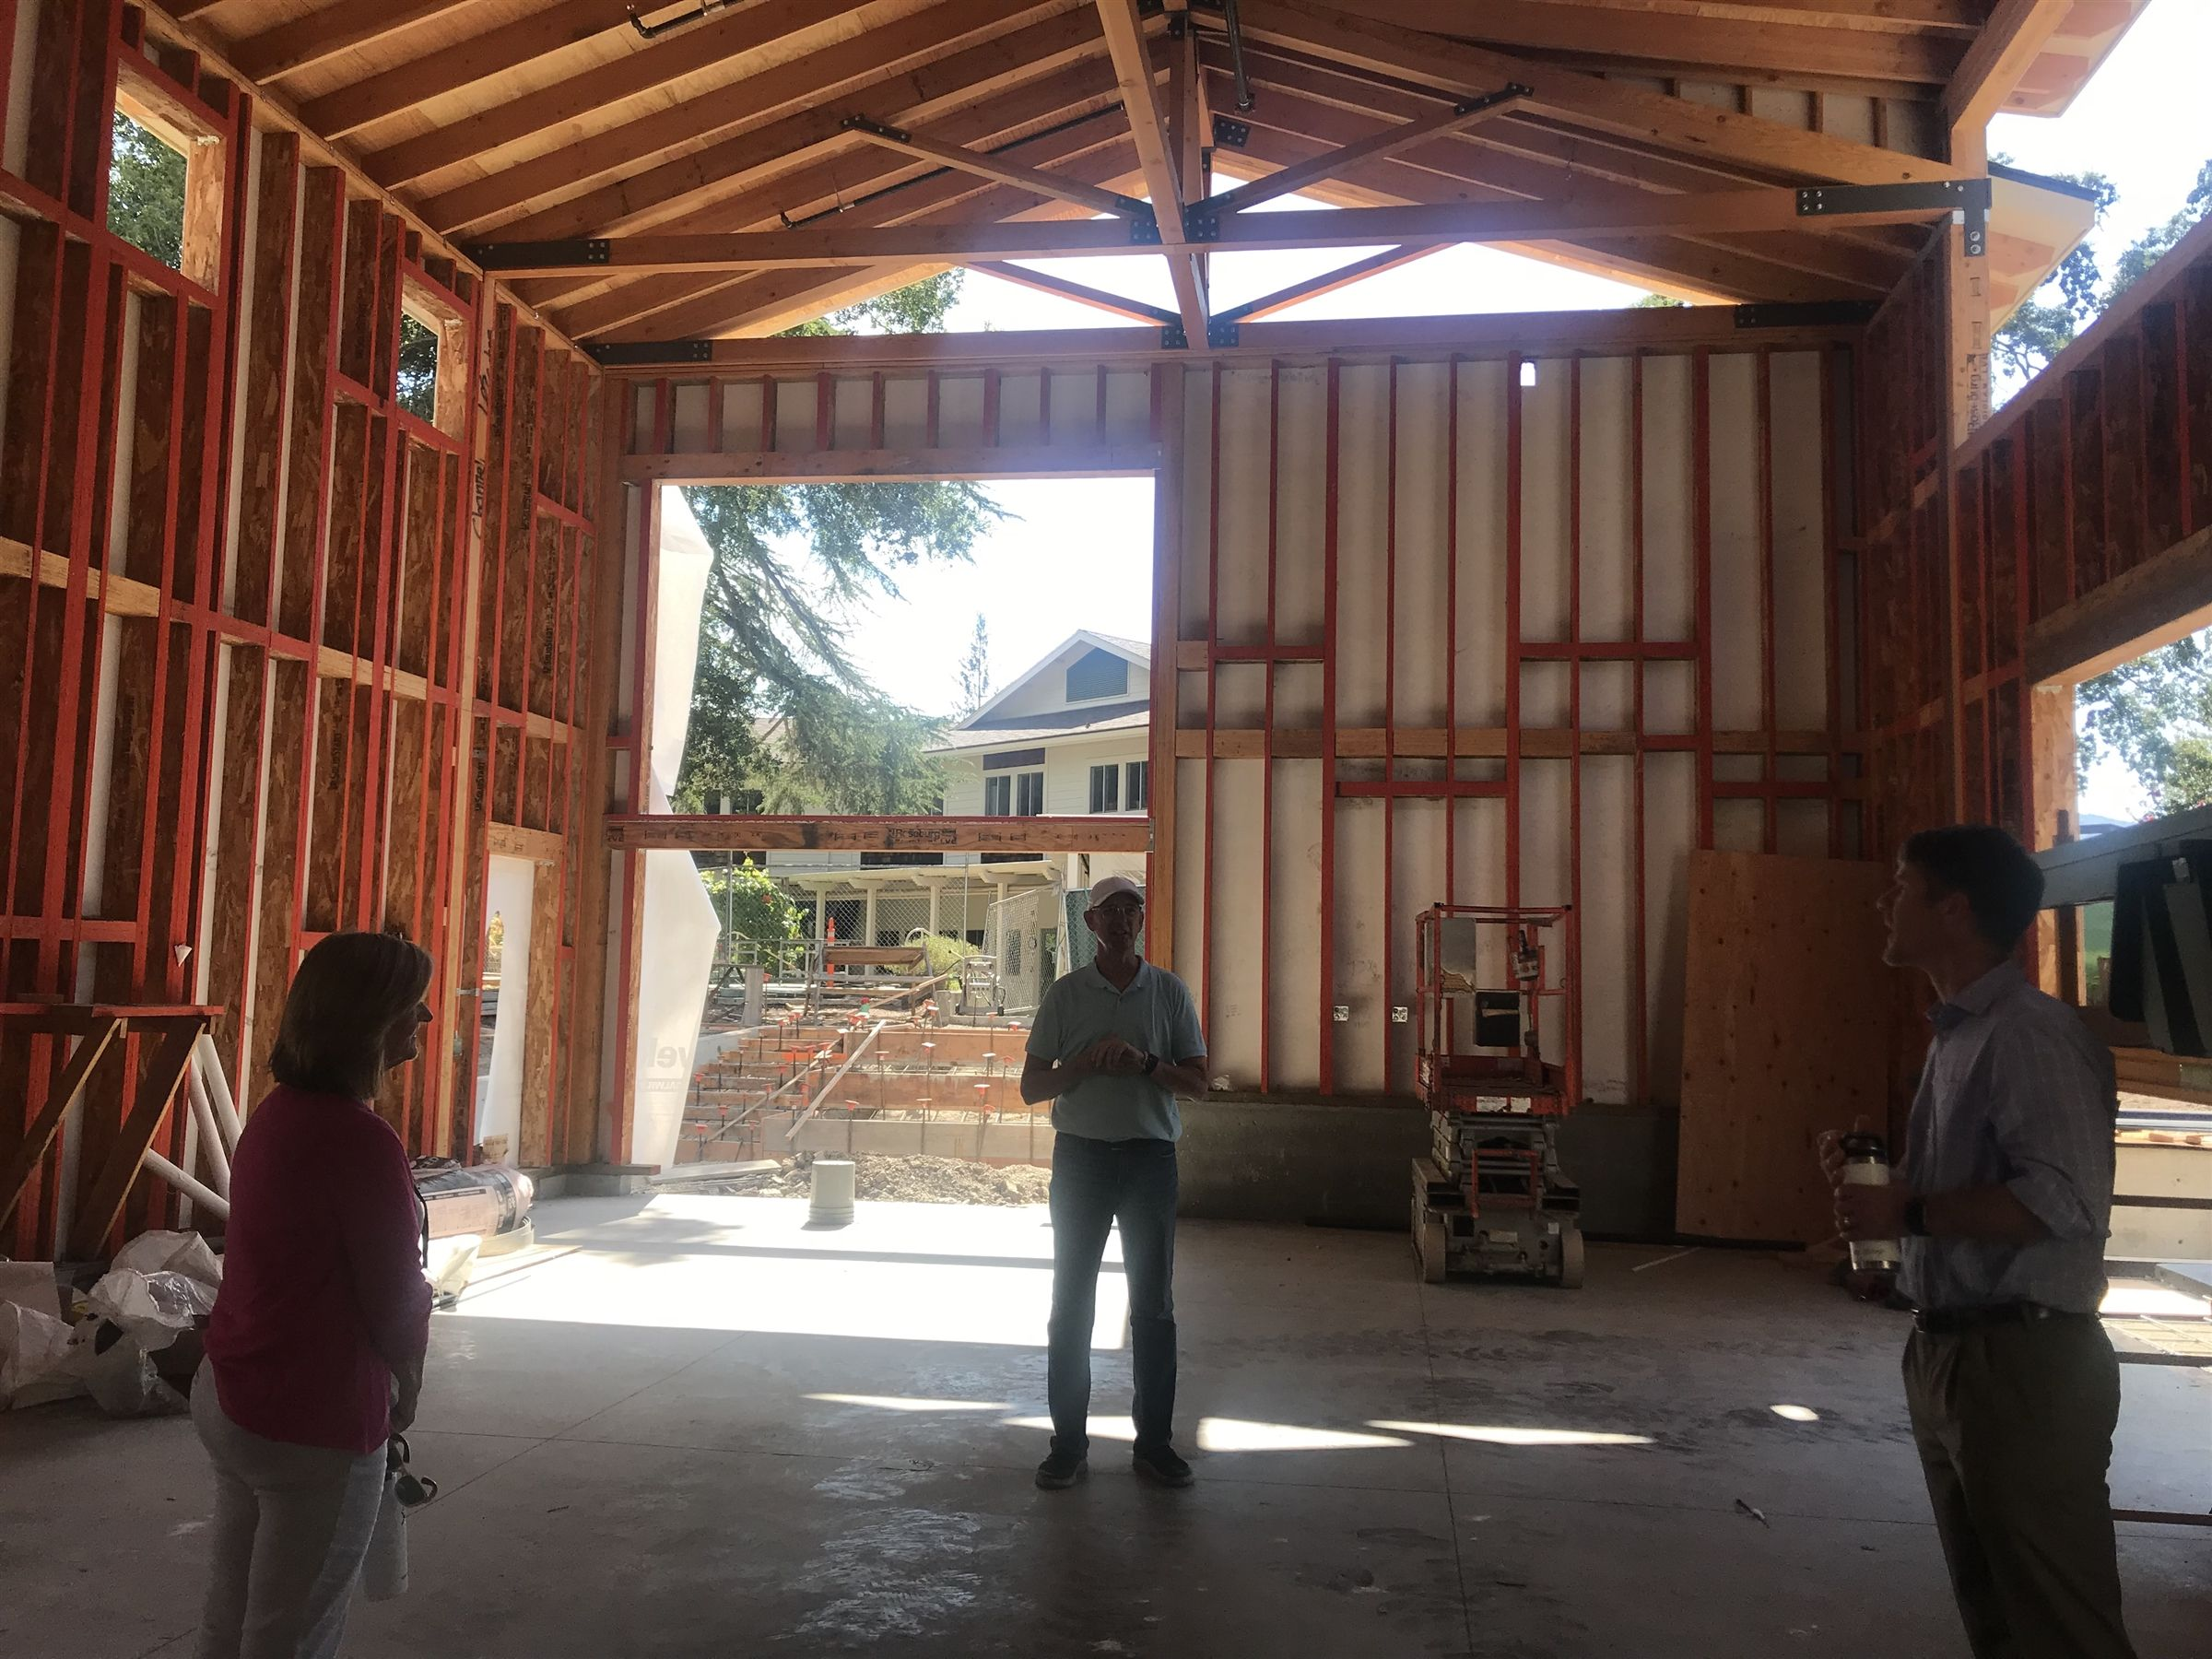 September 2019: We toured the Hub building space. We could really see the details that will make this building really come to life for students.